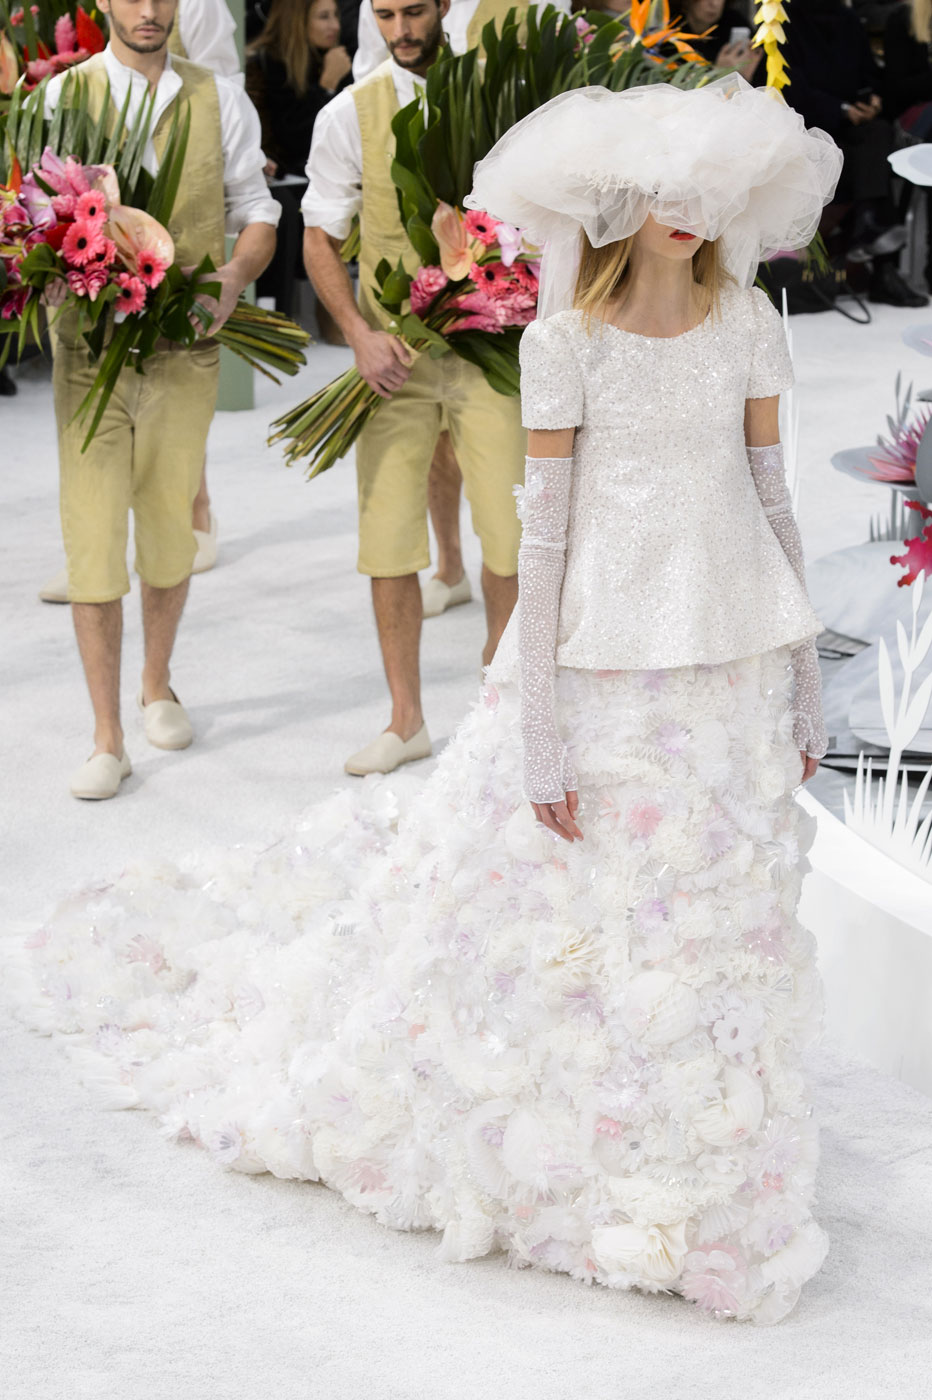 Chanel-fashion-runway-show-haute-couture-paris-spring-summer-2015-the-impression-153